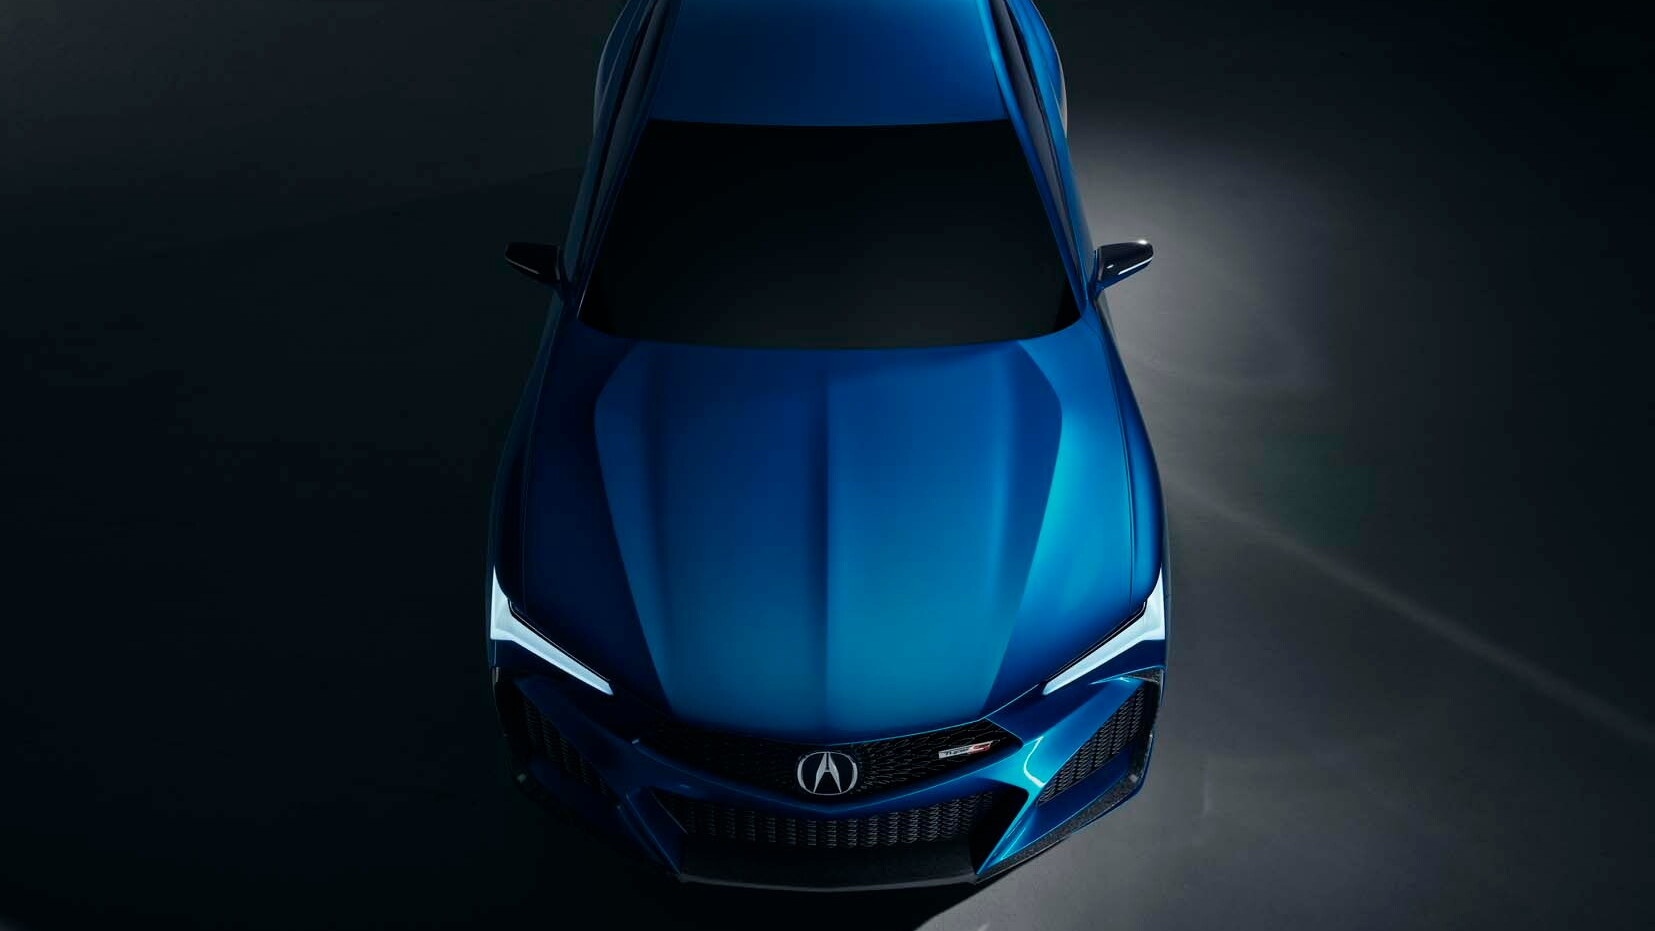 Acura Type S Concept previews a tougher, turbocharged TLX